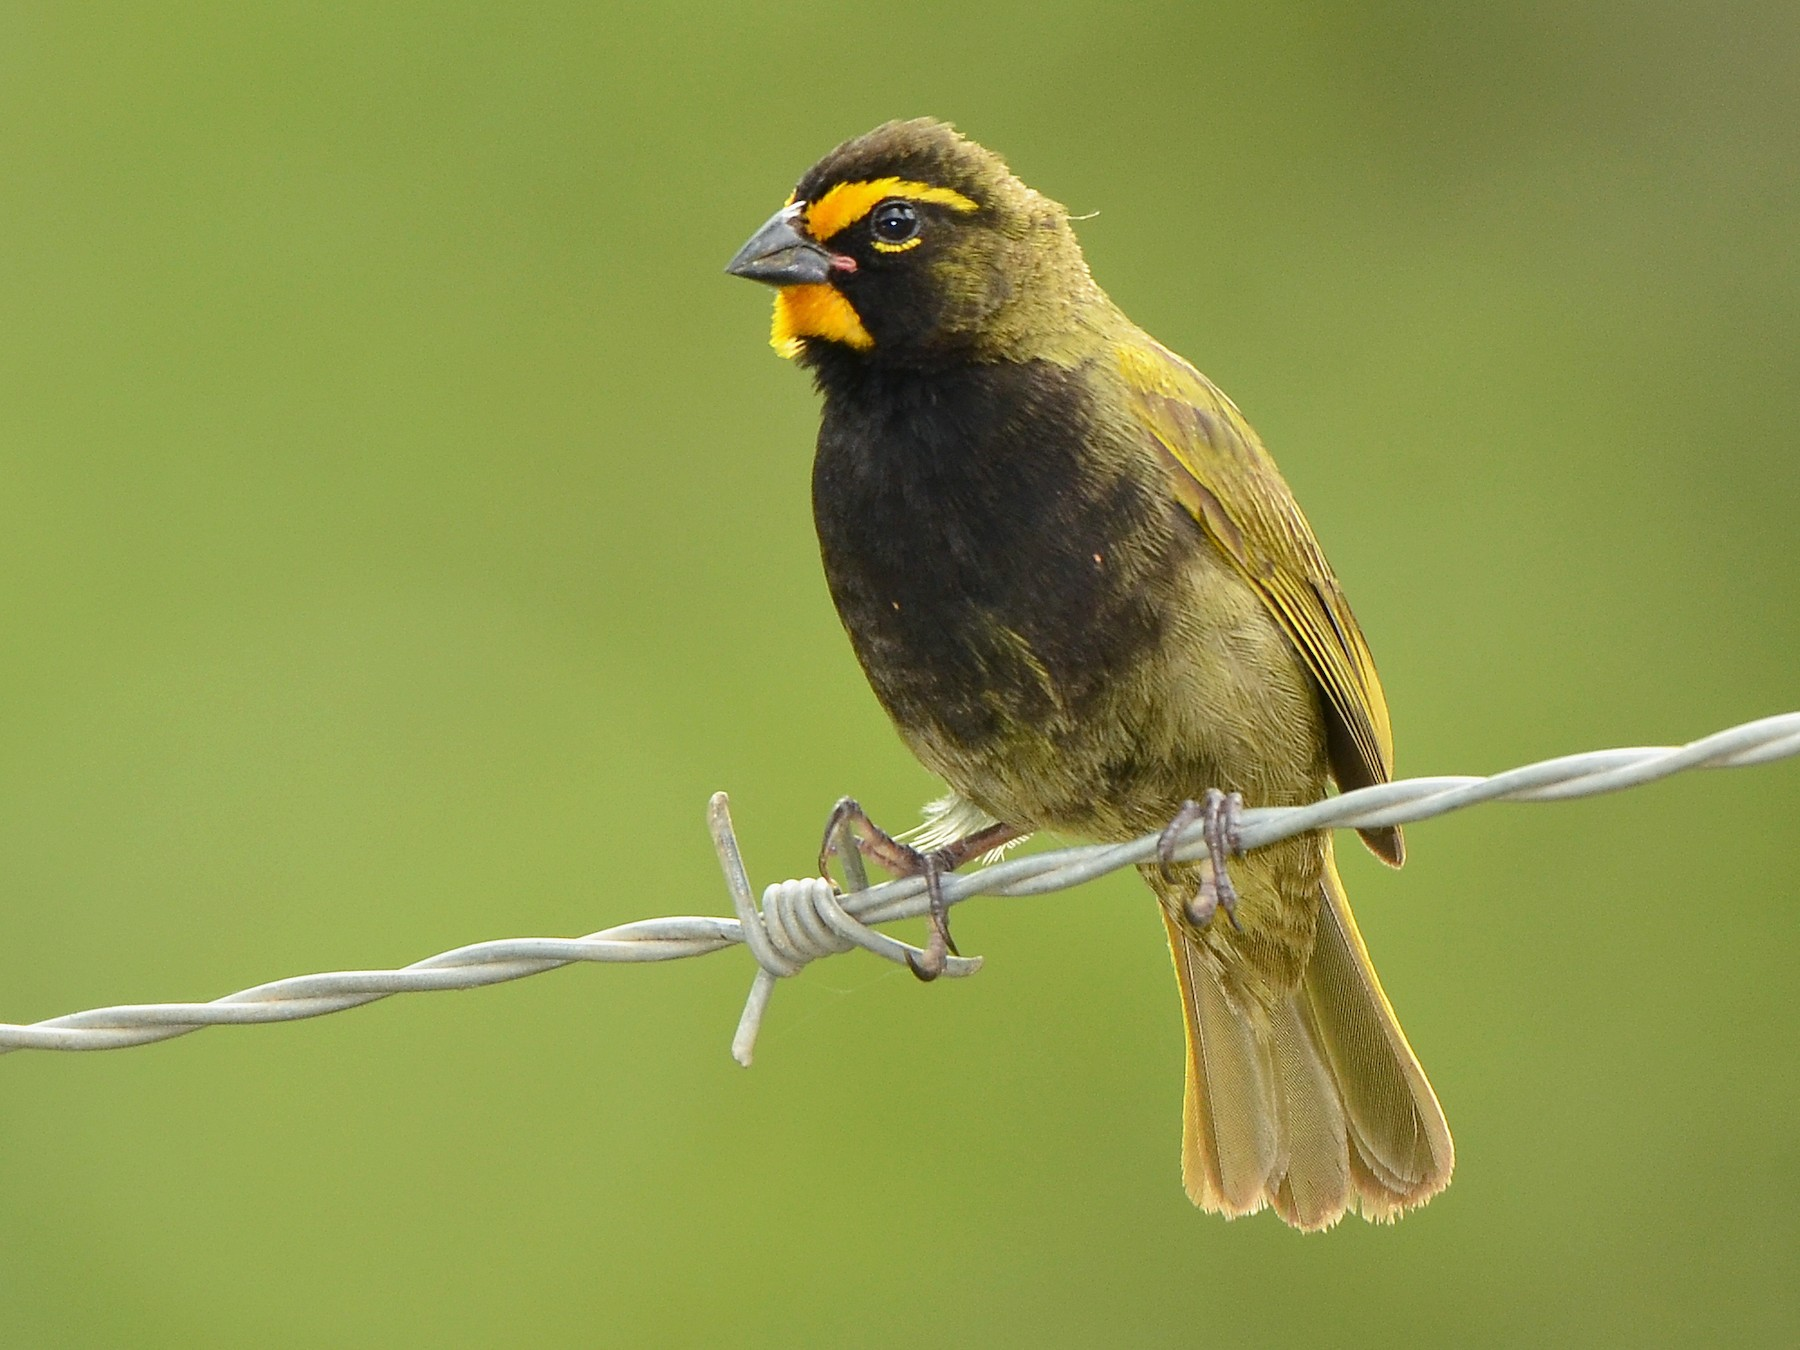 Yellow-faced Grassquit - José Frade